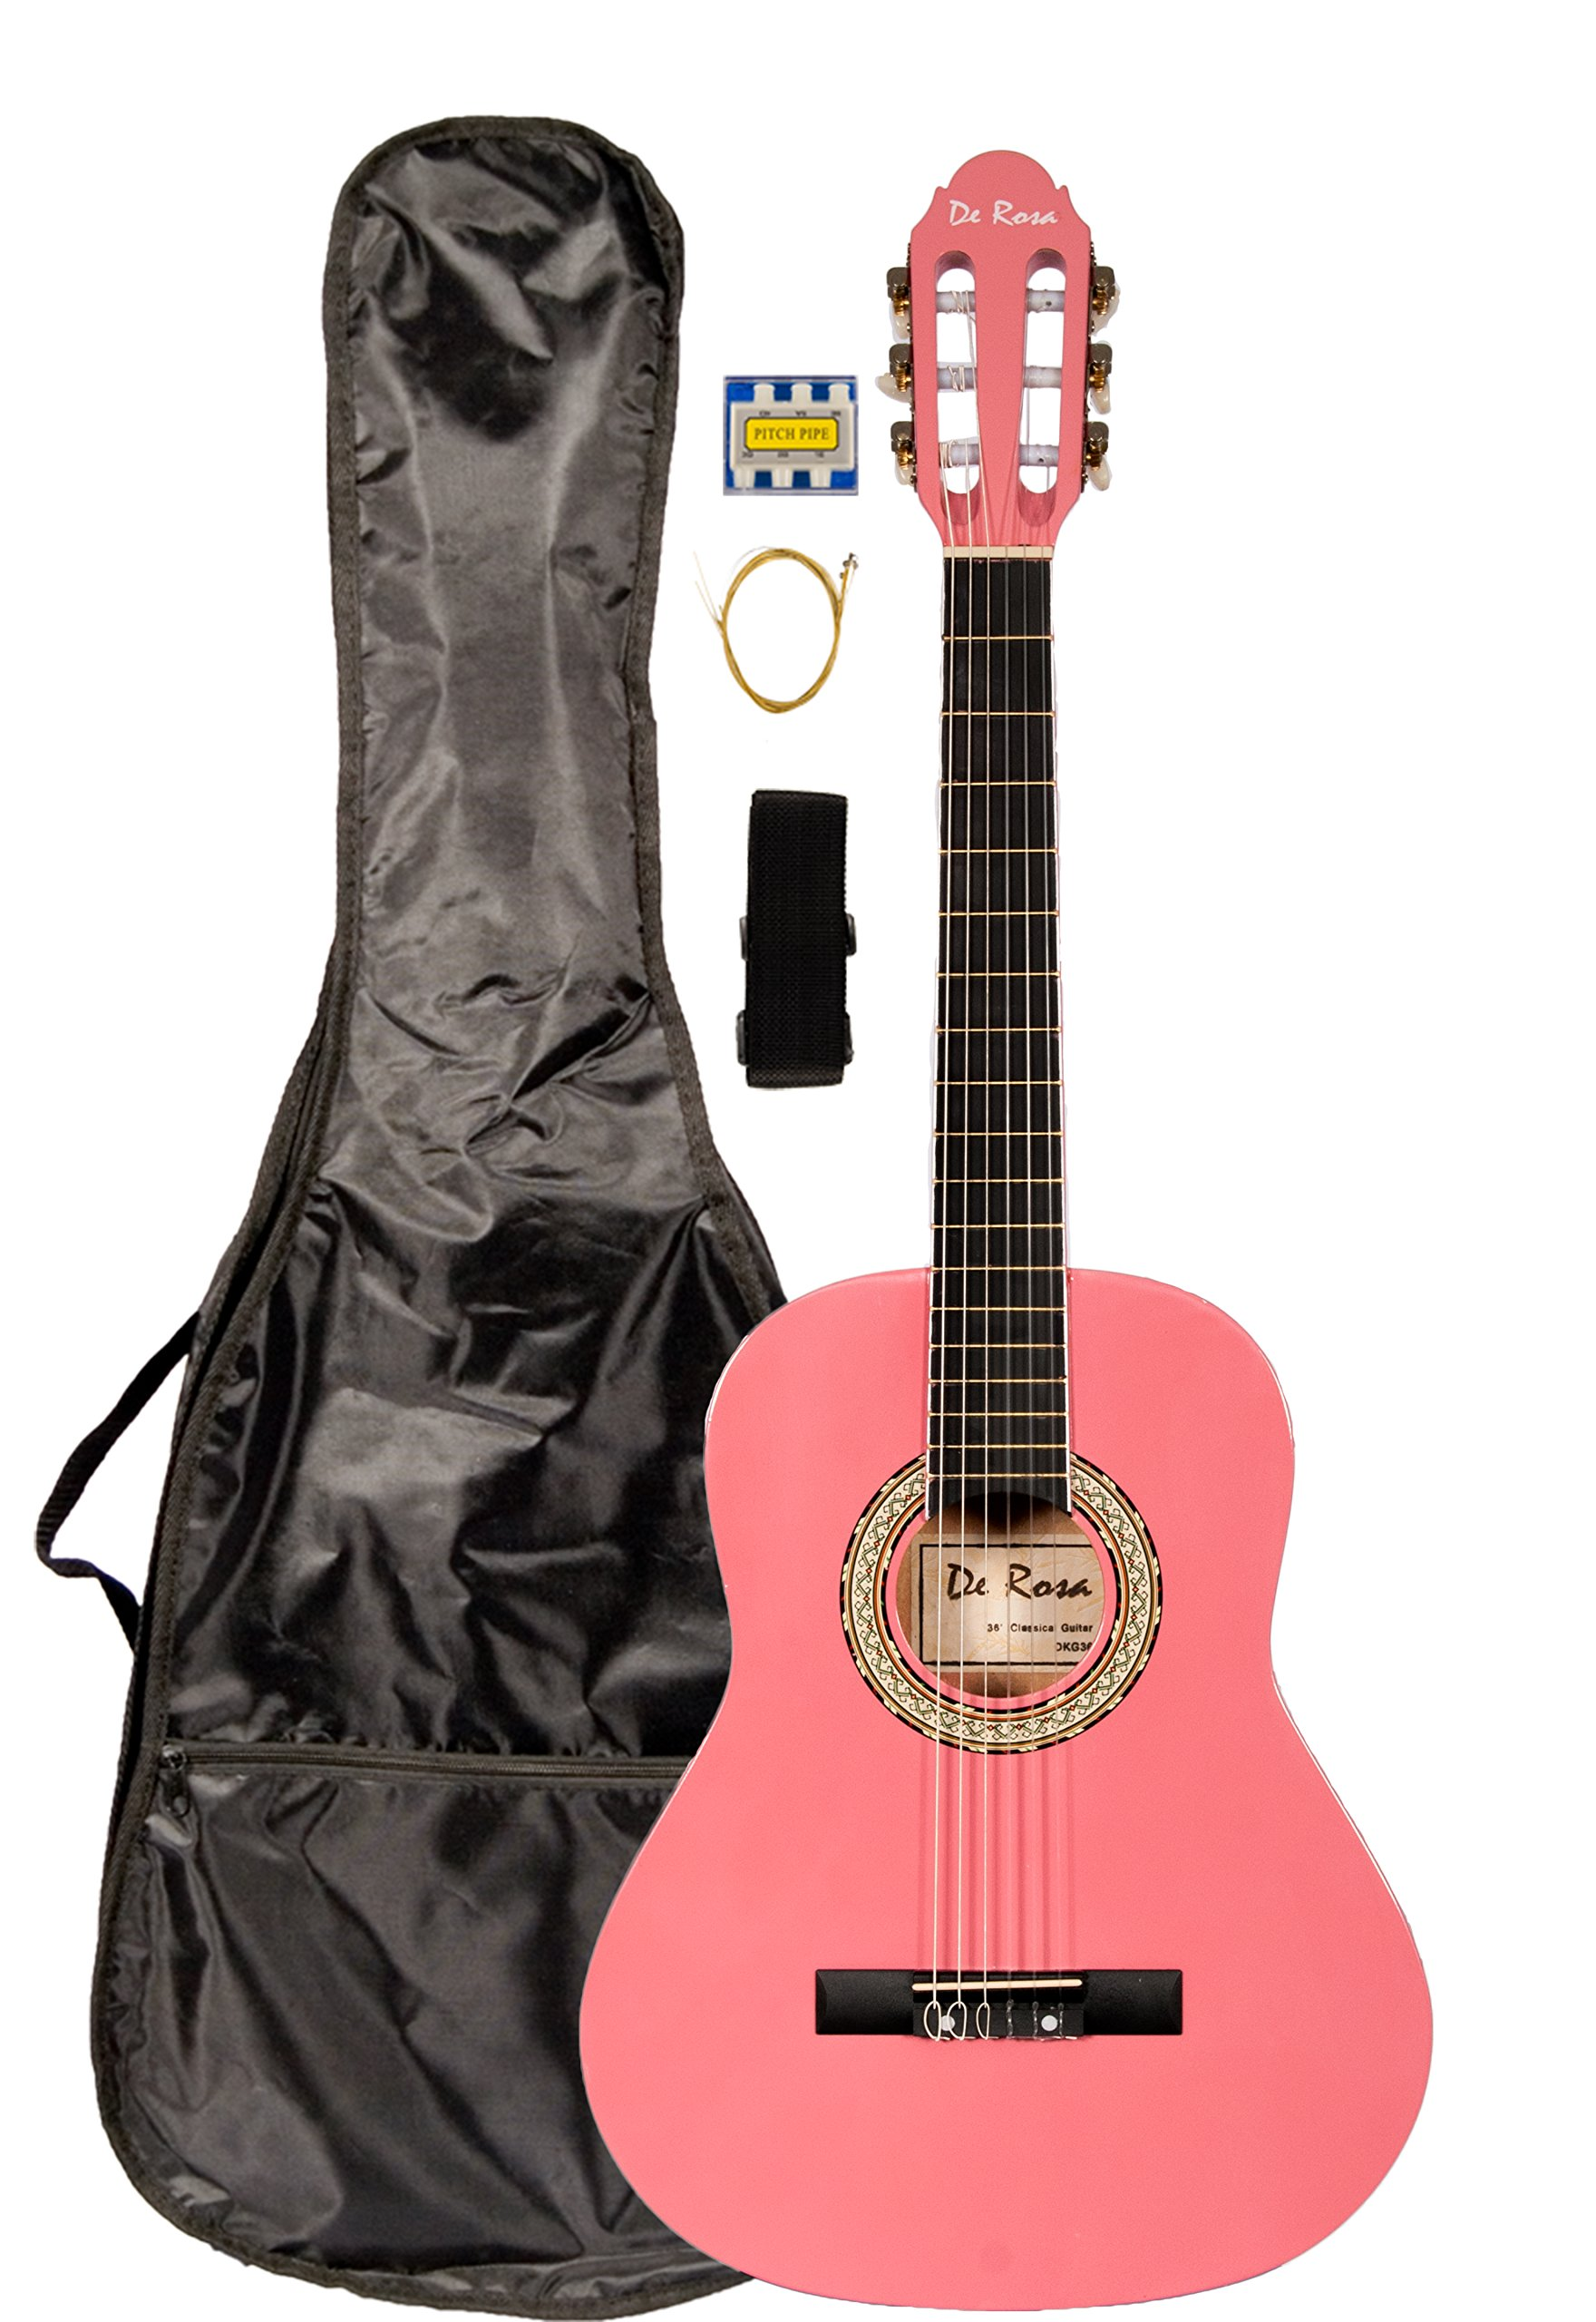 36 INCH DeRosa DKF36 Kid's PINK 3/4 Classical Nylon String Guitar great for beginners